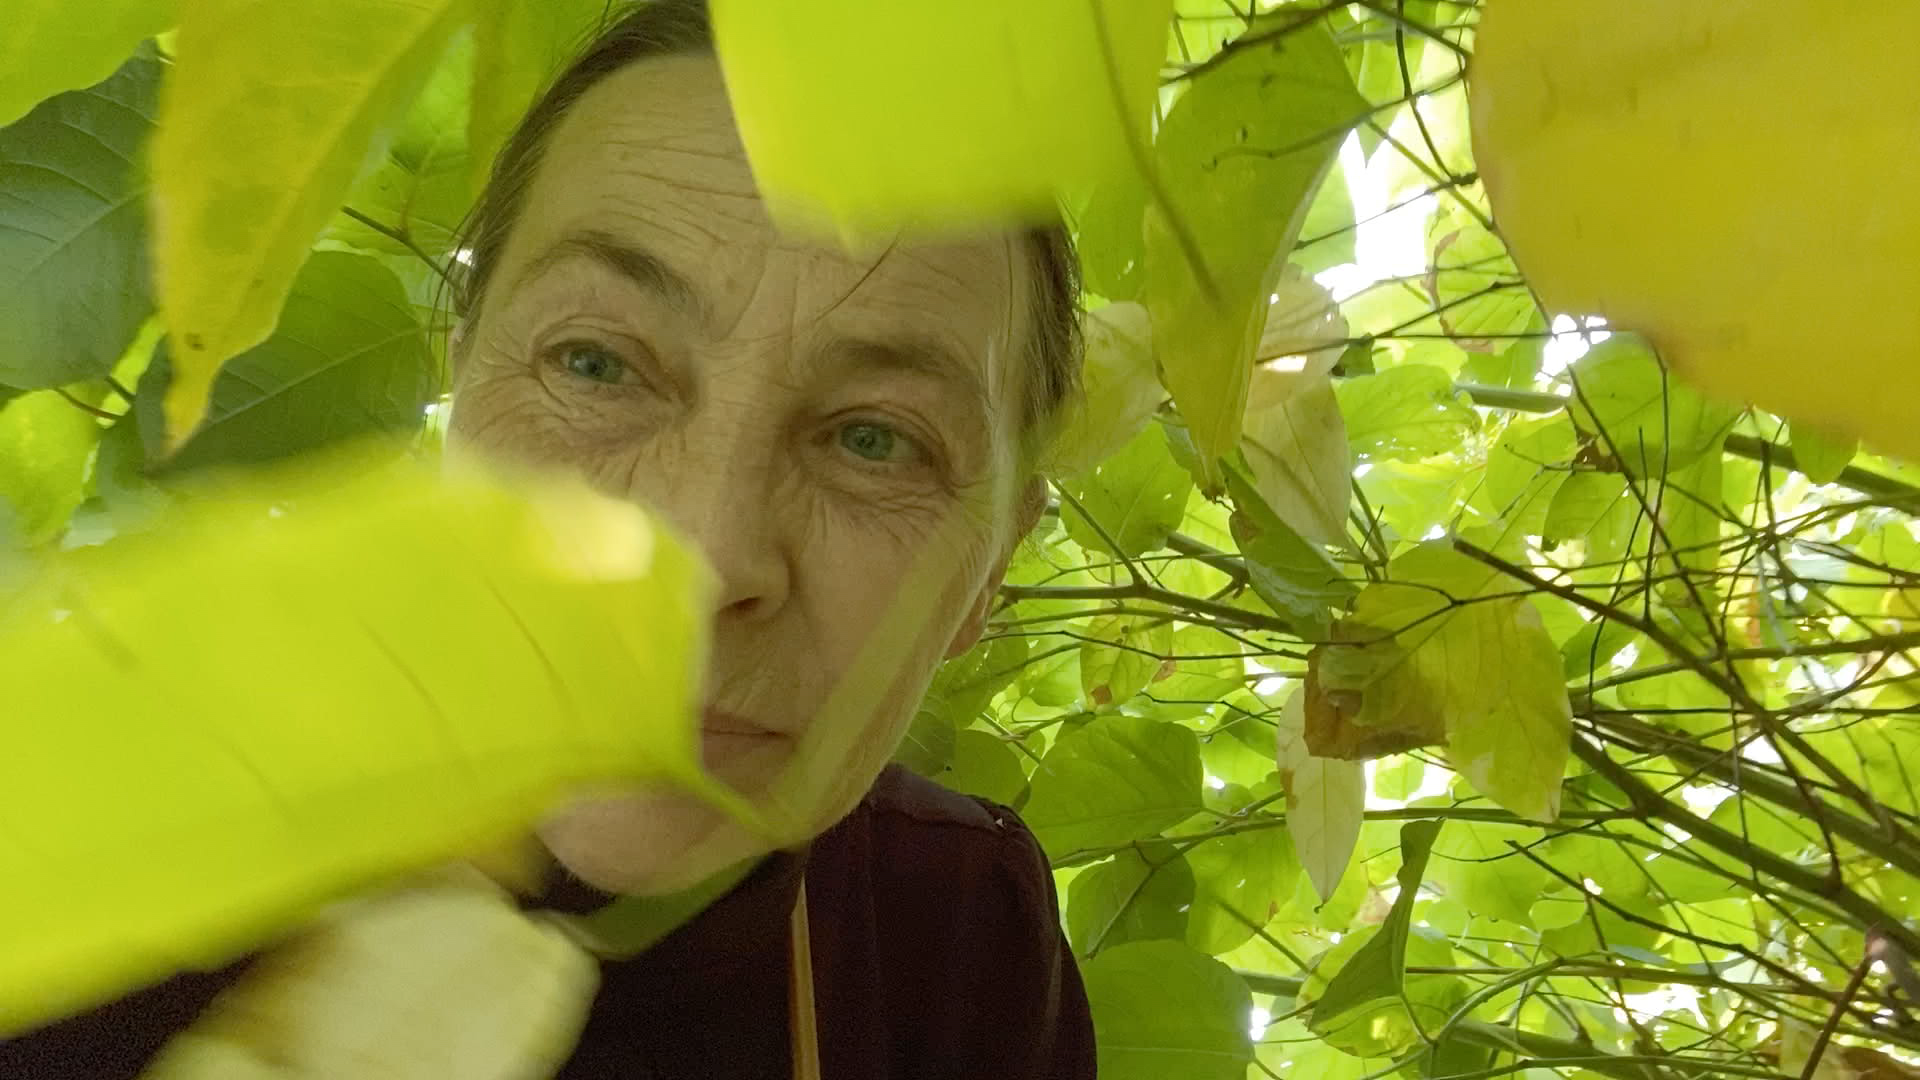 Shaded by green leaves as the sunlight peaks through, an older woman is close in frame.